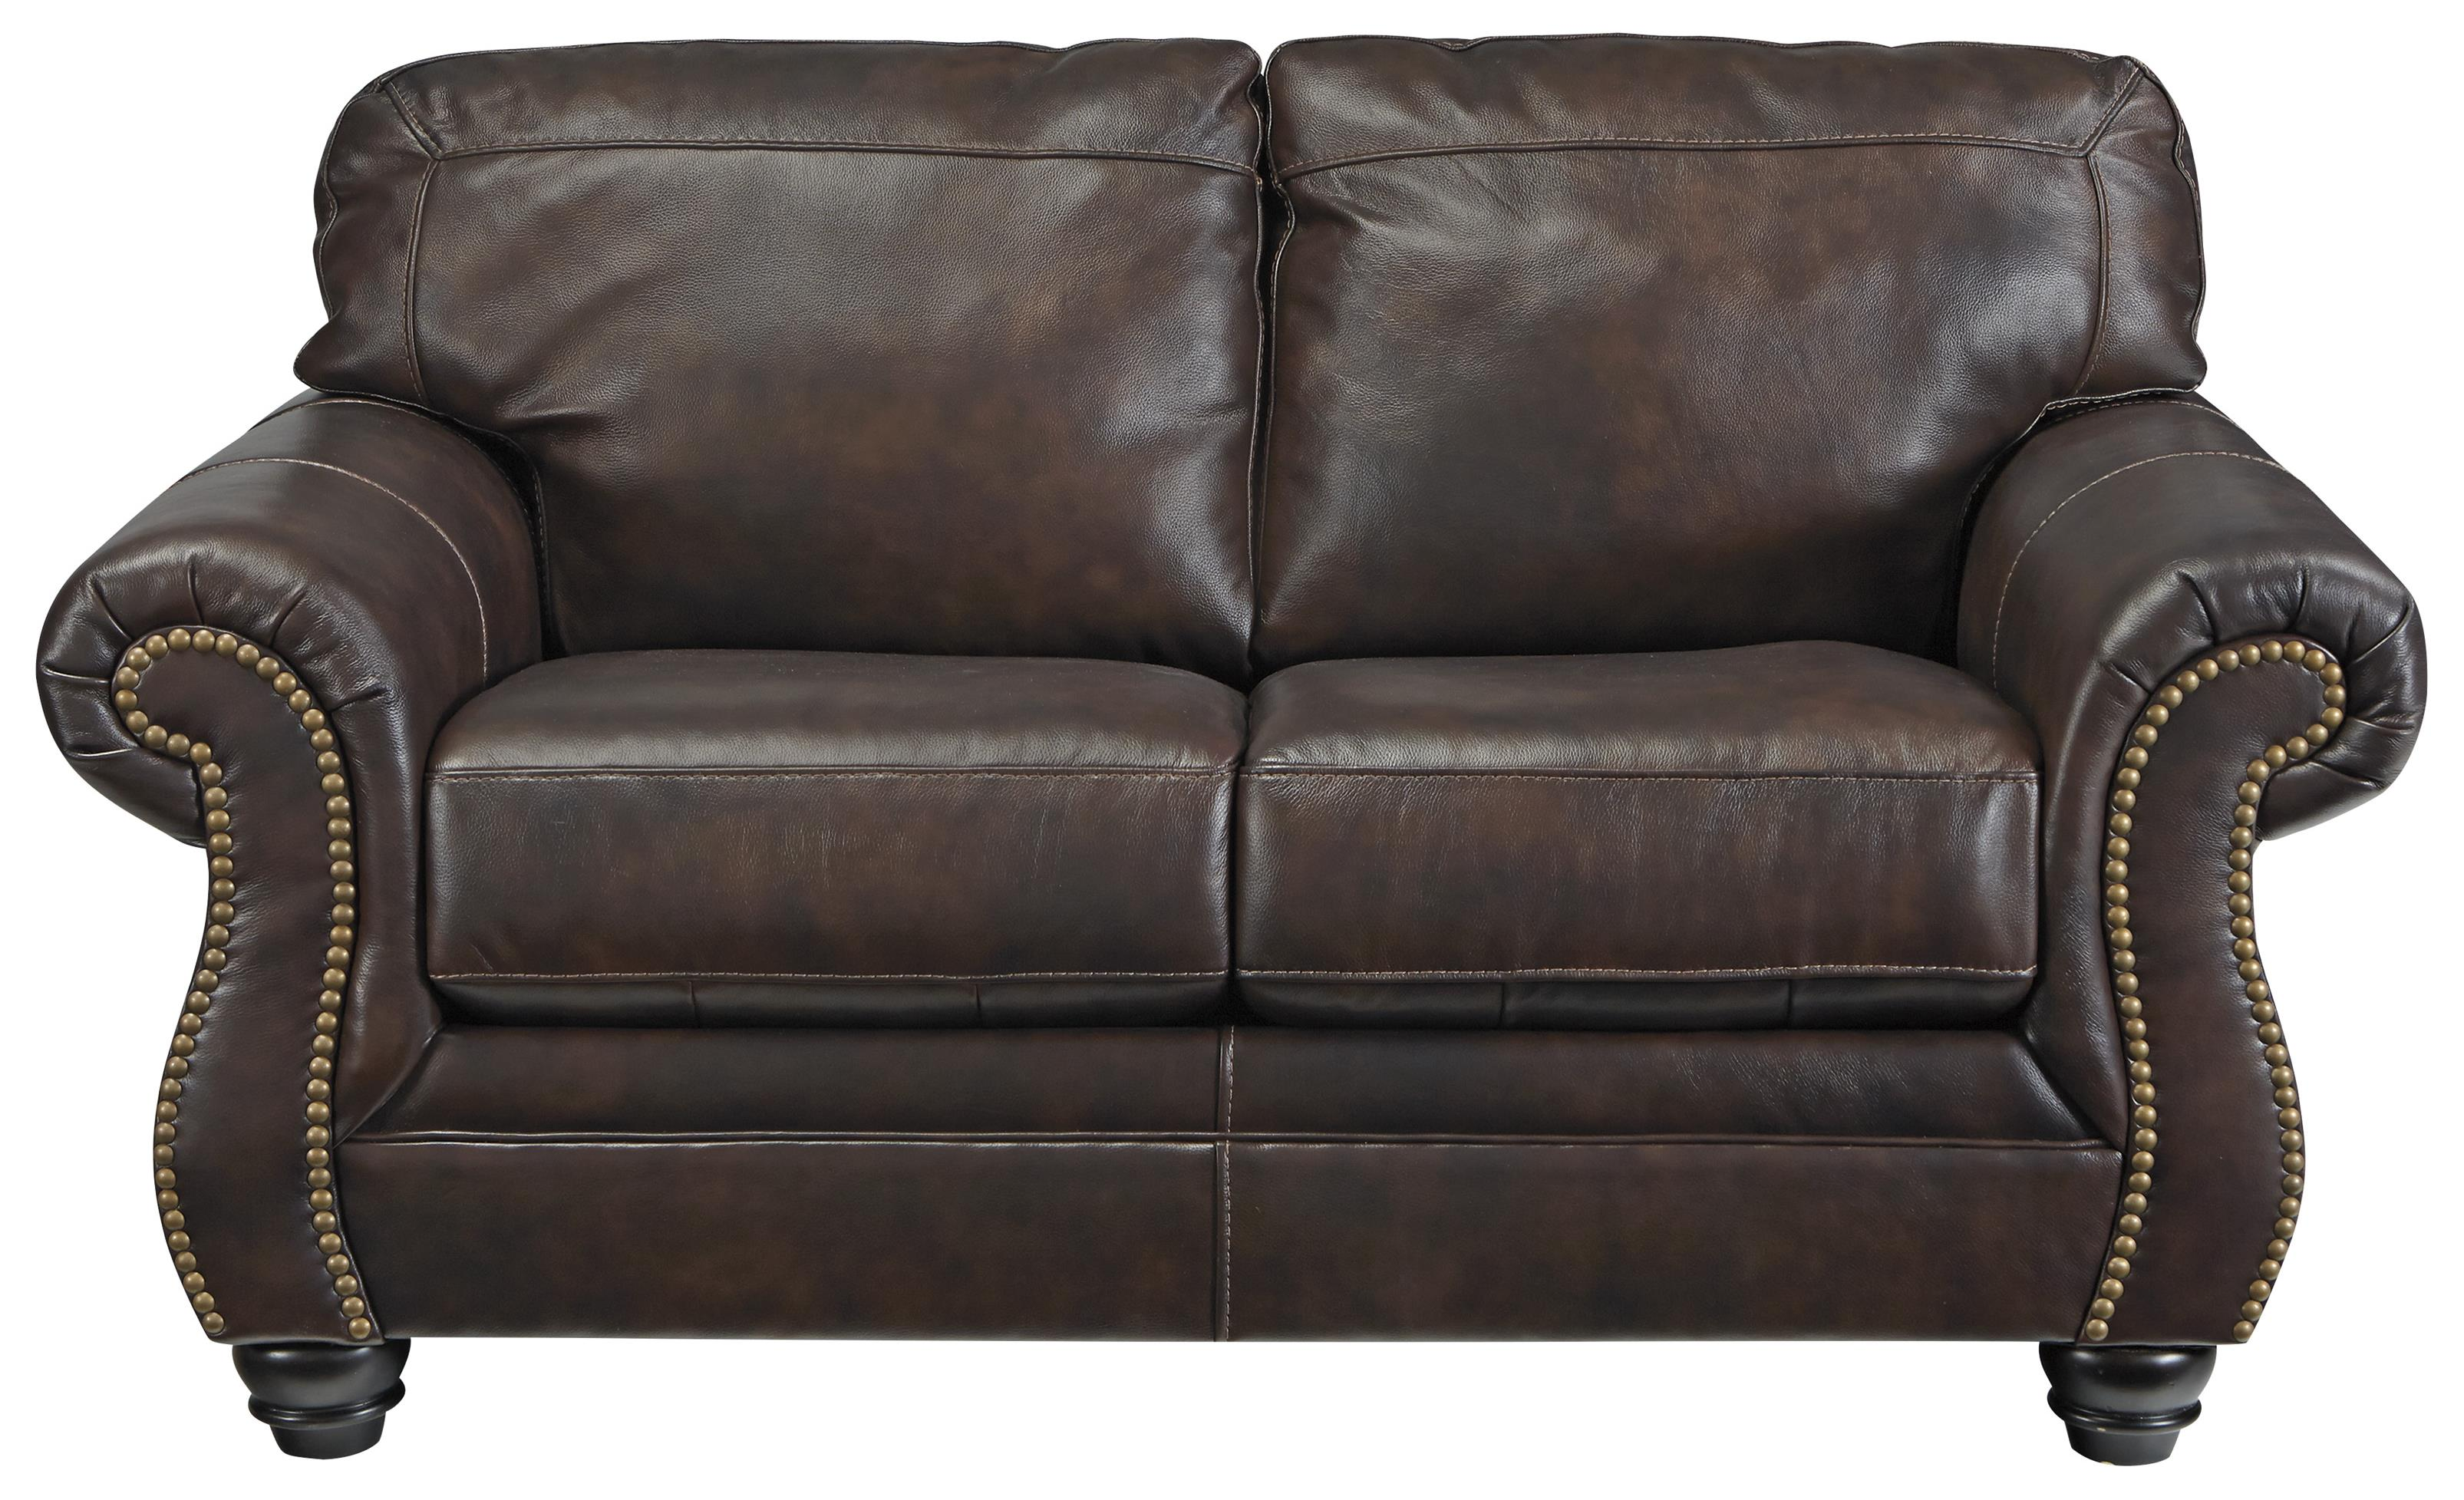 Sofa Brisbane Brisbane Traditional Leather Match Loveseat With Rolled Arms Nailhead Trim By Signature Design By Ashley At Rotmans